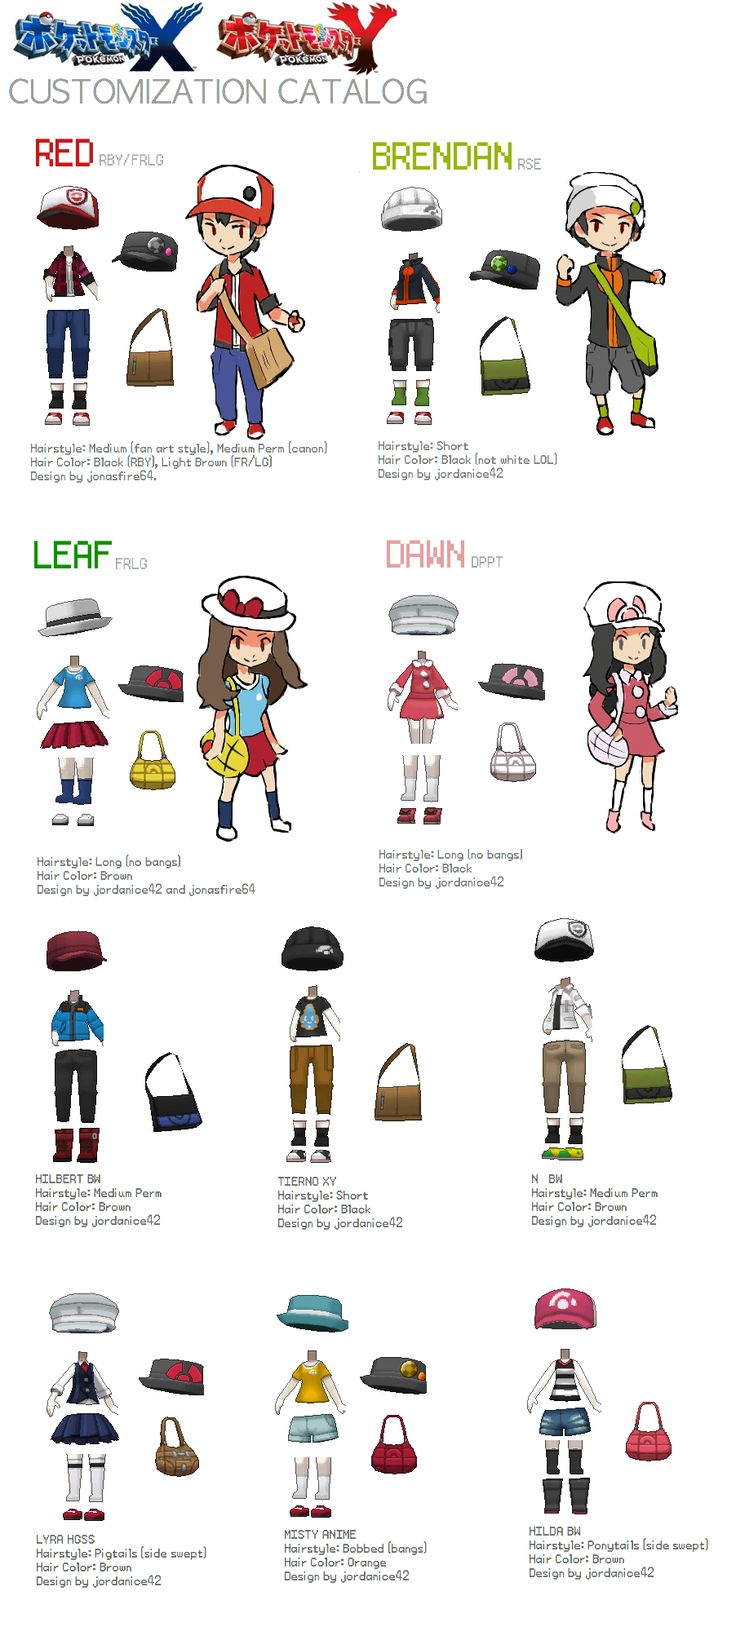 Pokemon XY Character Customization Catalog! by jordanice42.deviantart.com on @DeviantArt